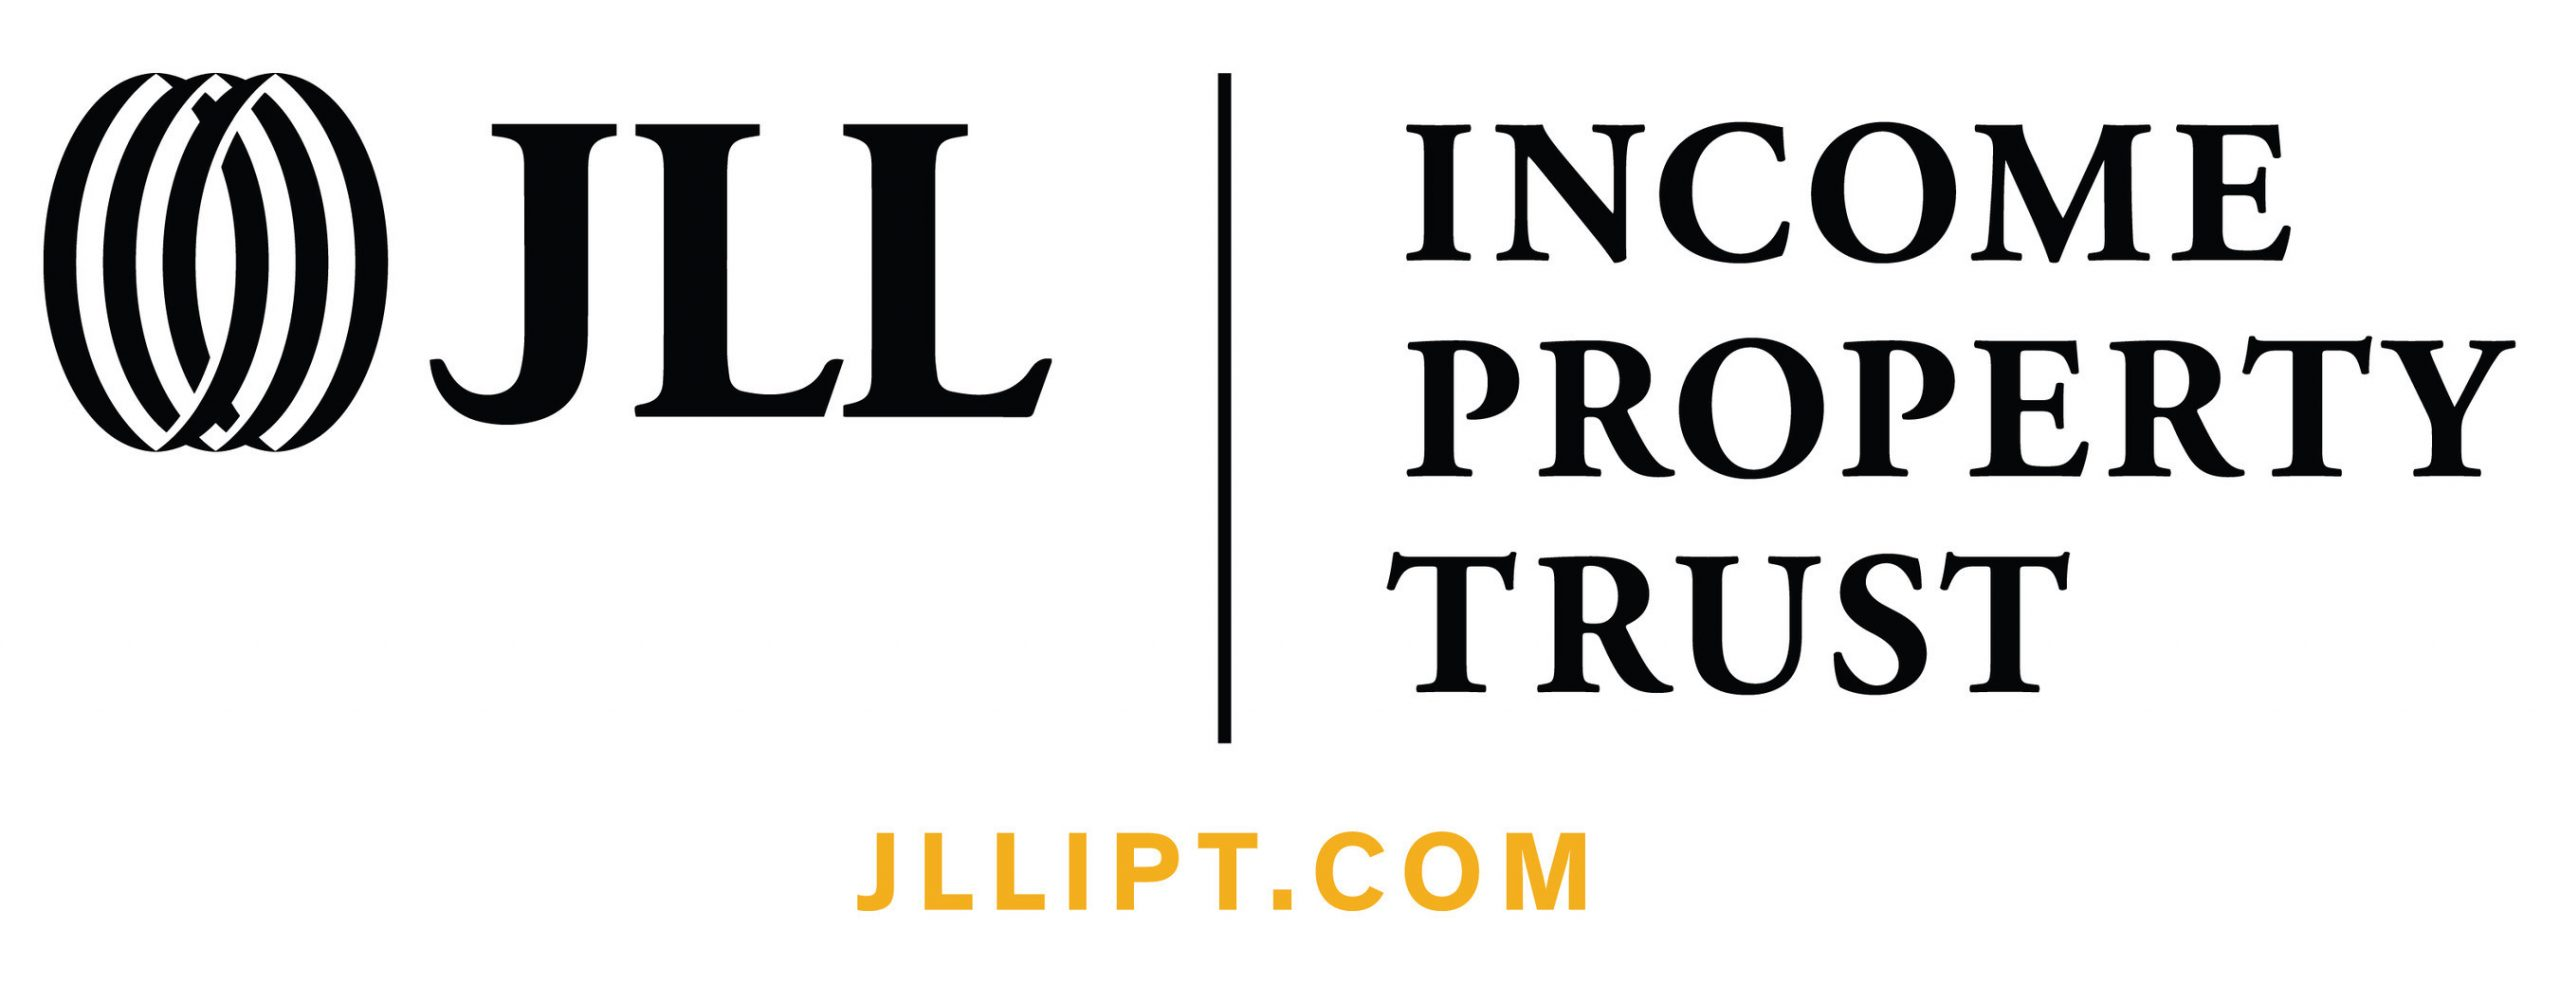 JLL Income Property Trust Announces Q2 2020 Earnings Call